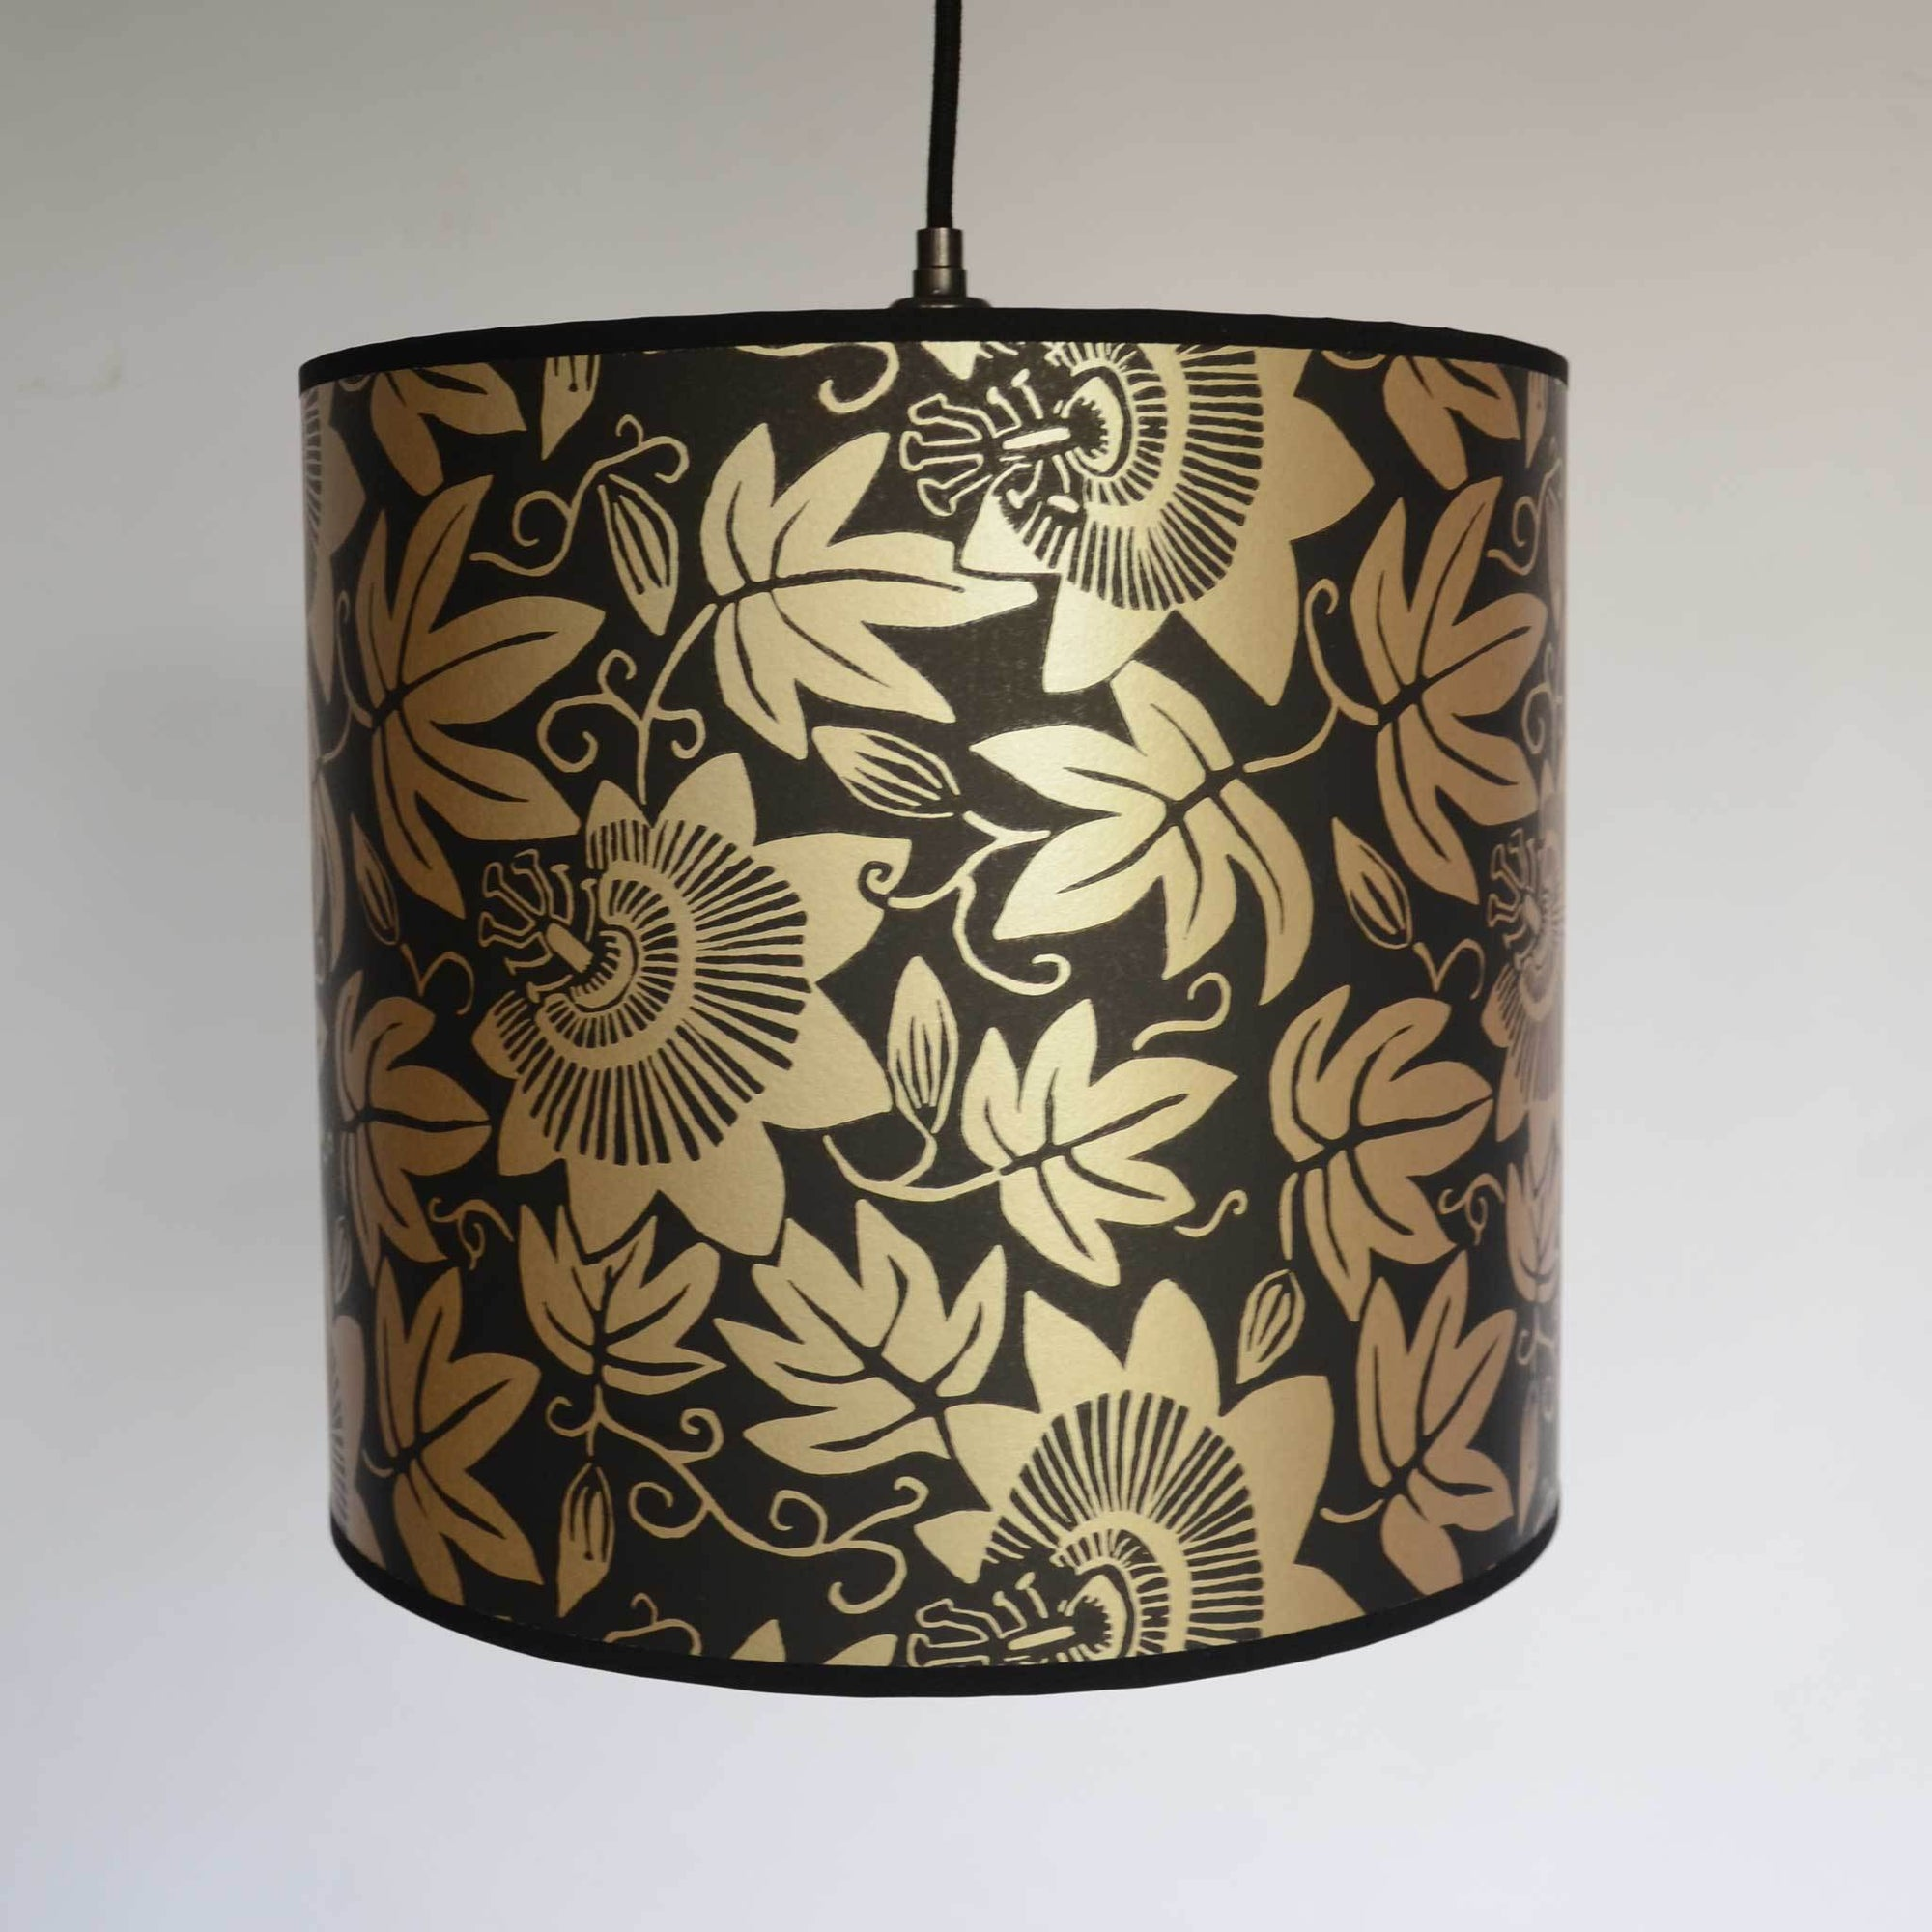 Black and Gold Passion flower large tall lampshade